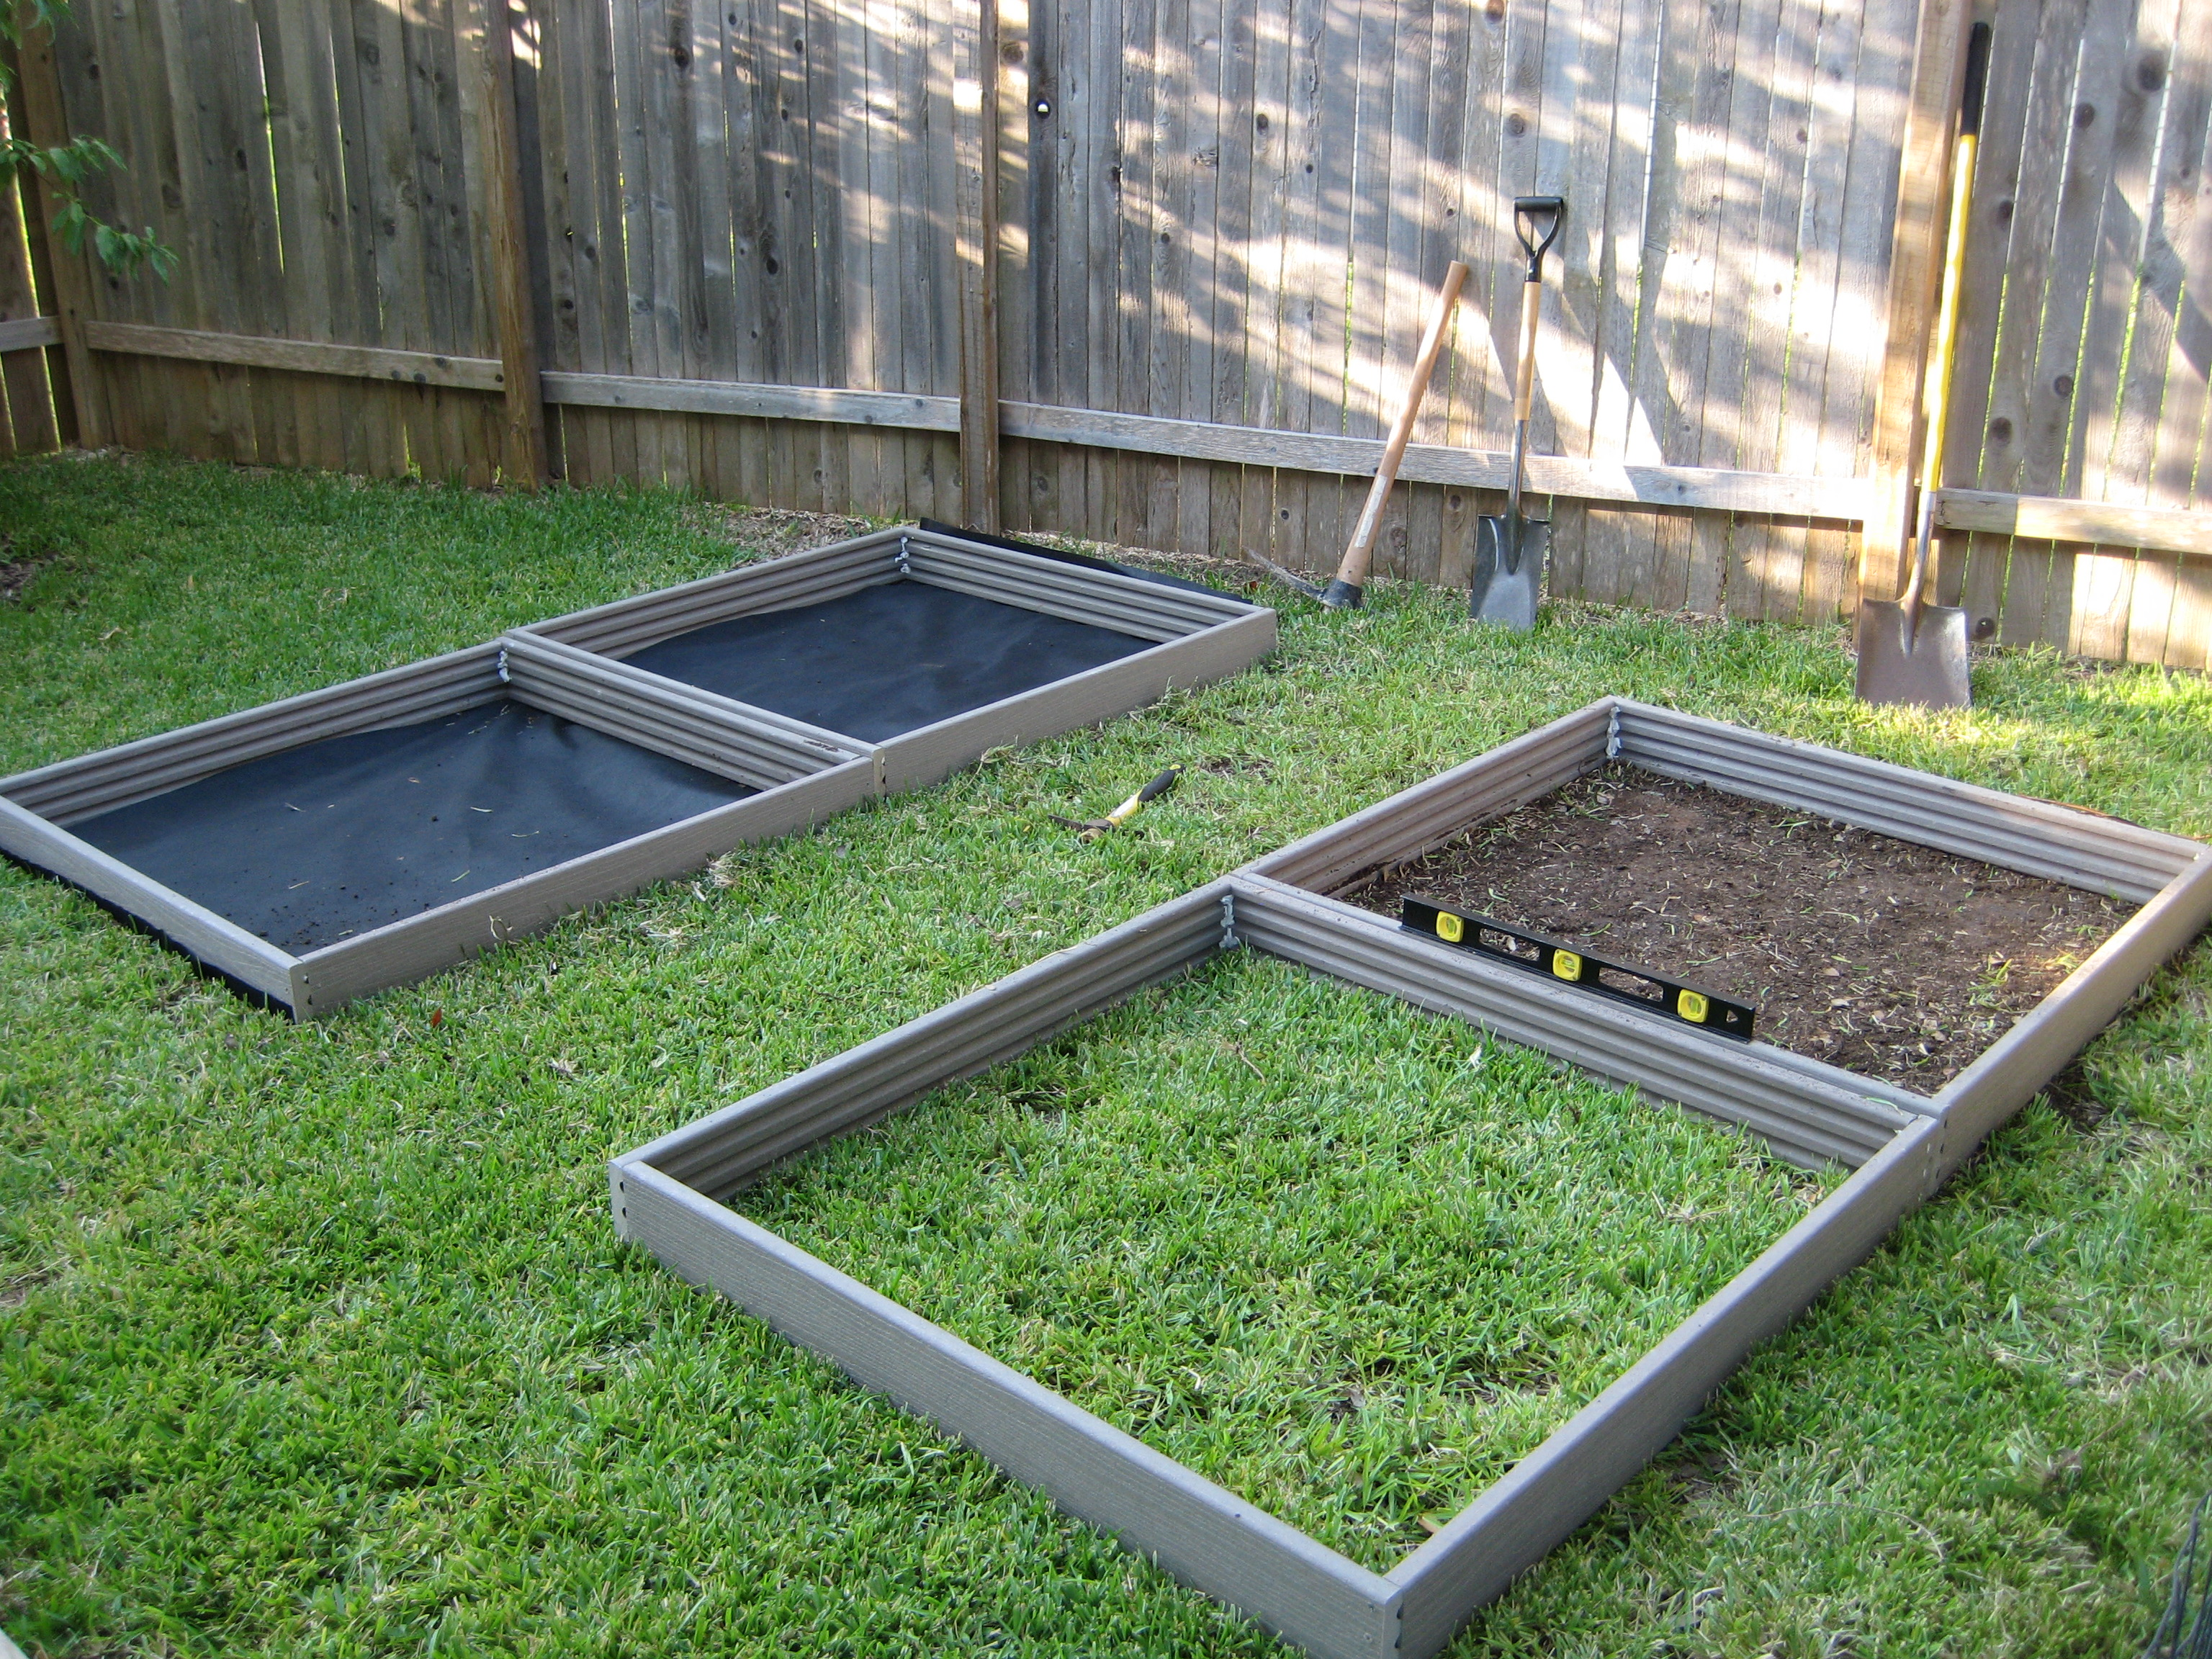 Raised beds in various phases of being installed once each bed is